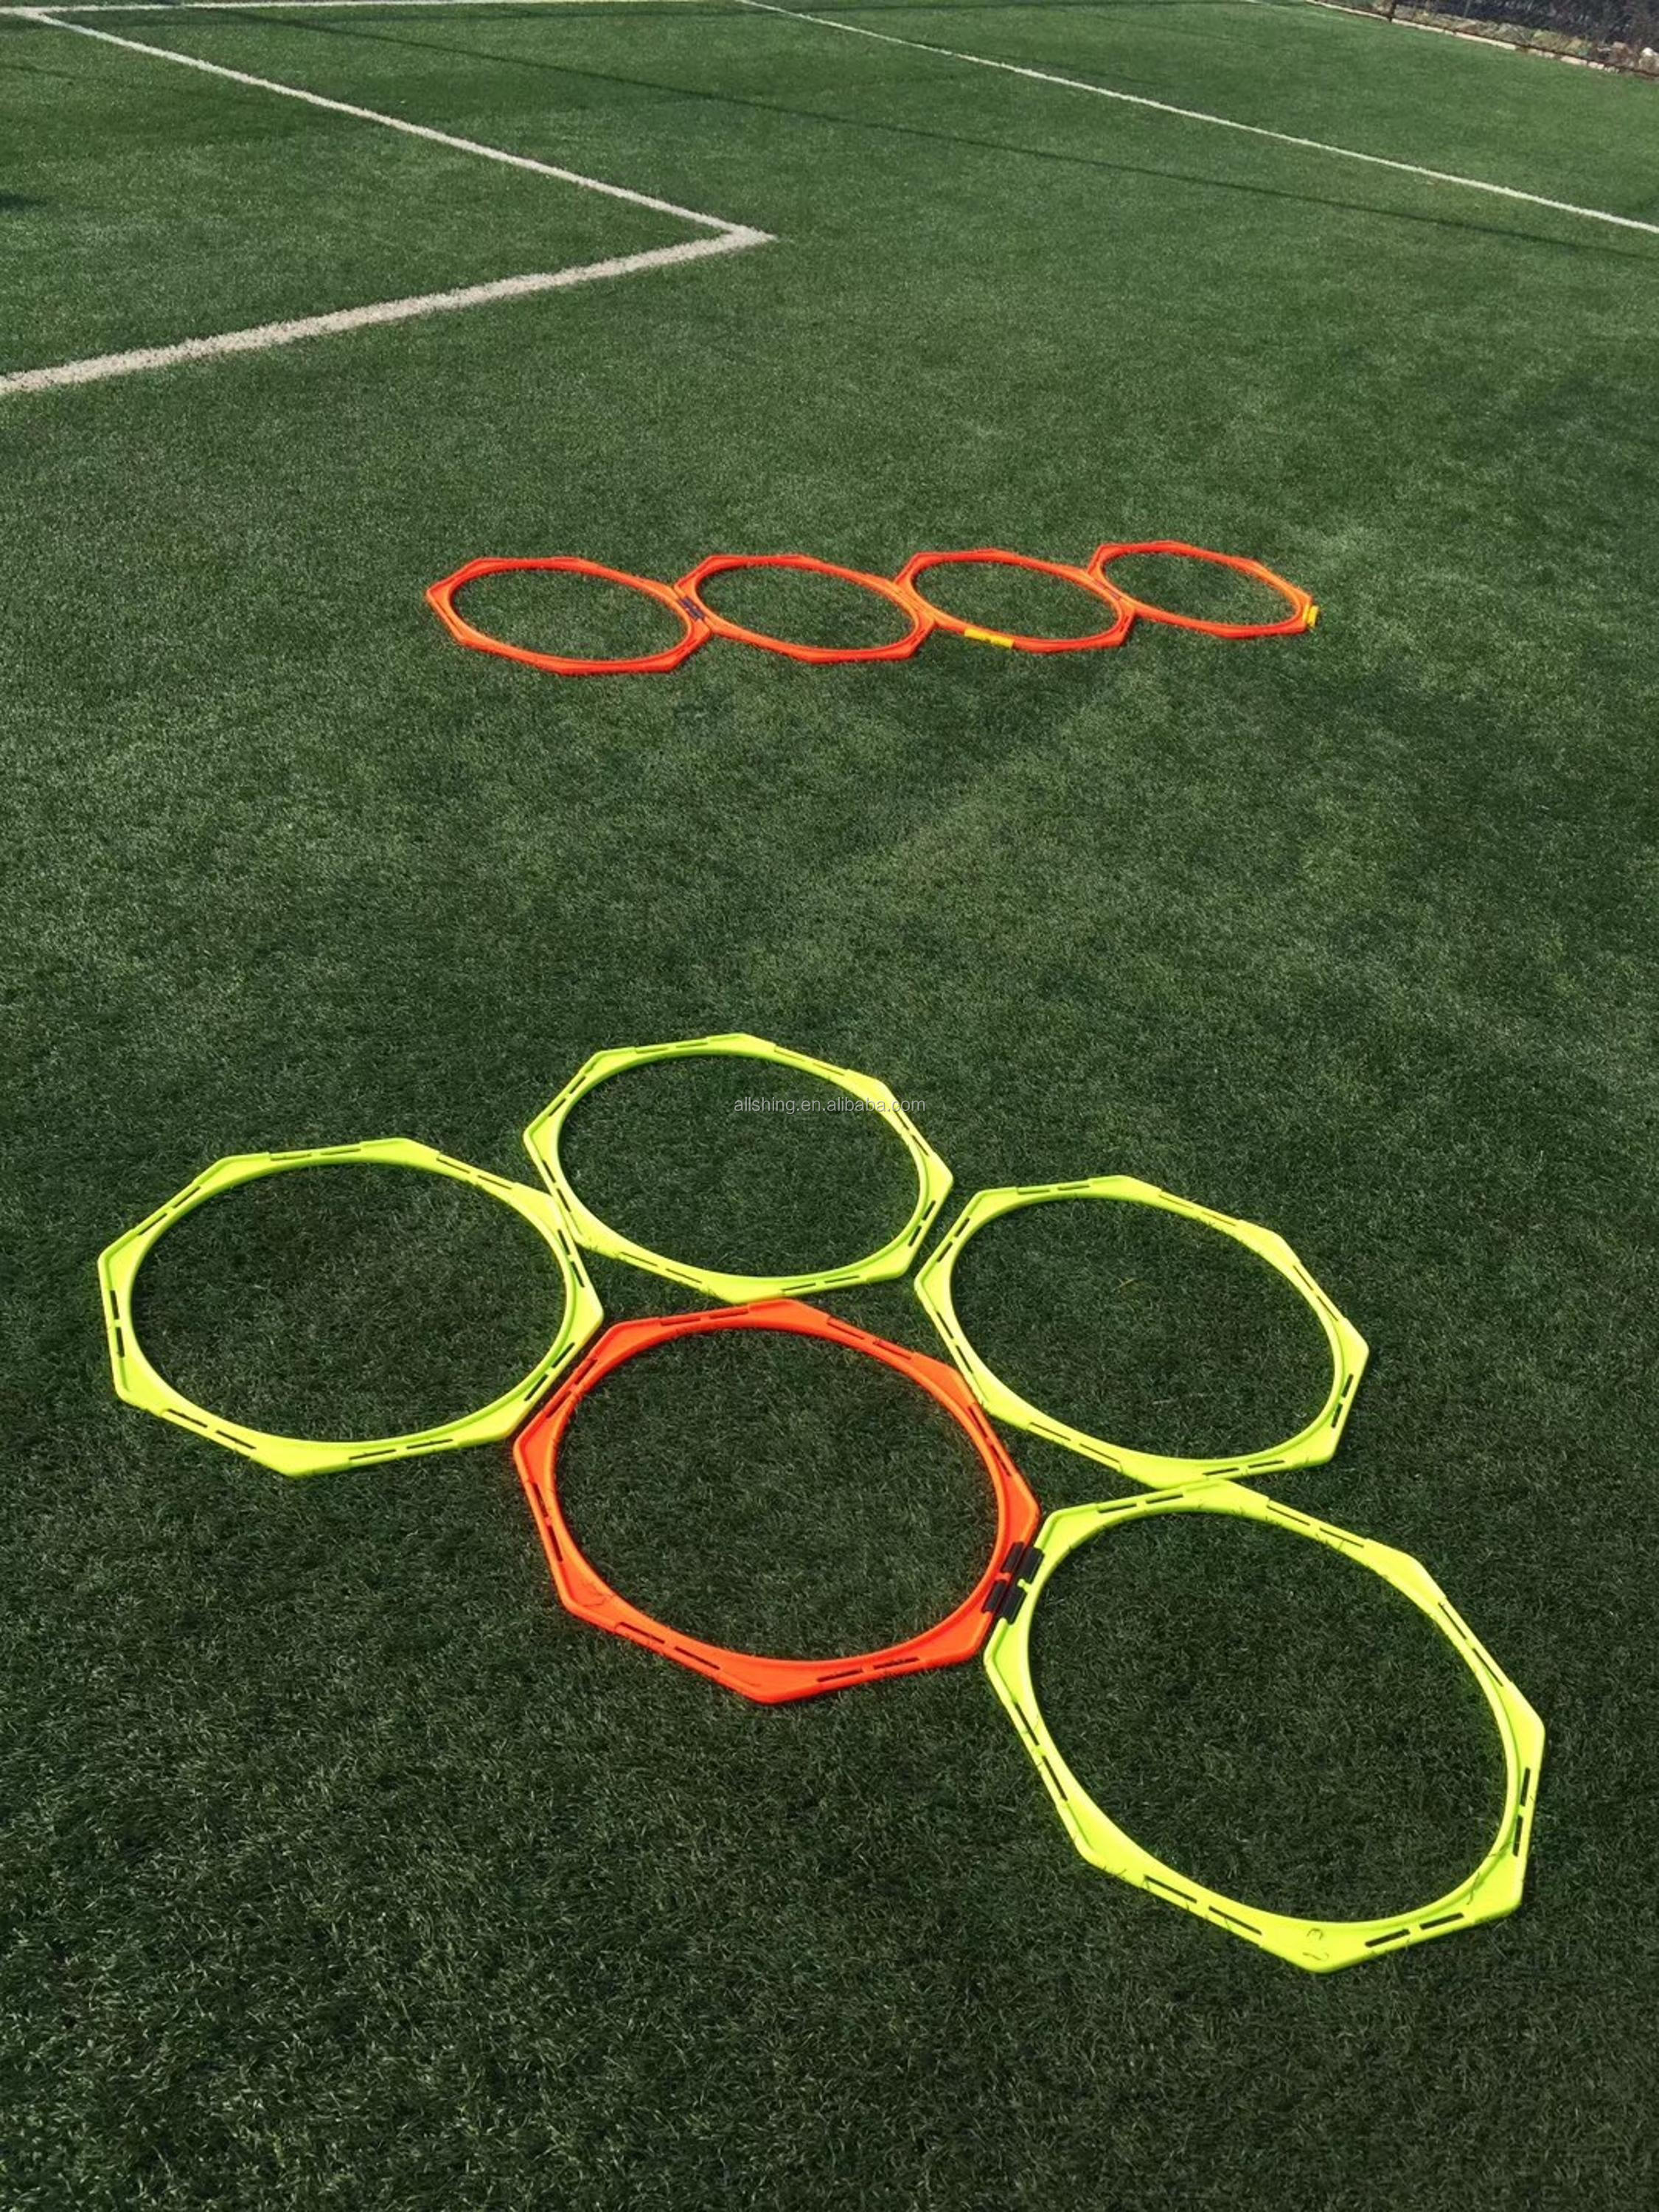 wholesale pro pop up soccer goal two portable soccer nets with